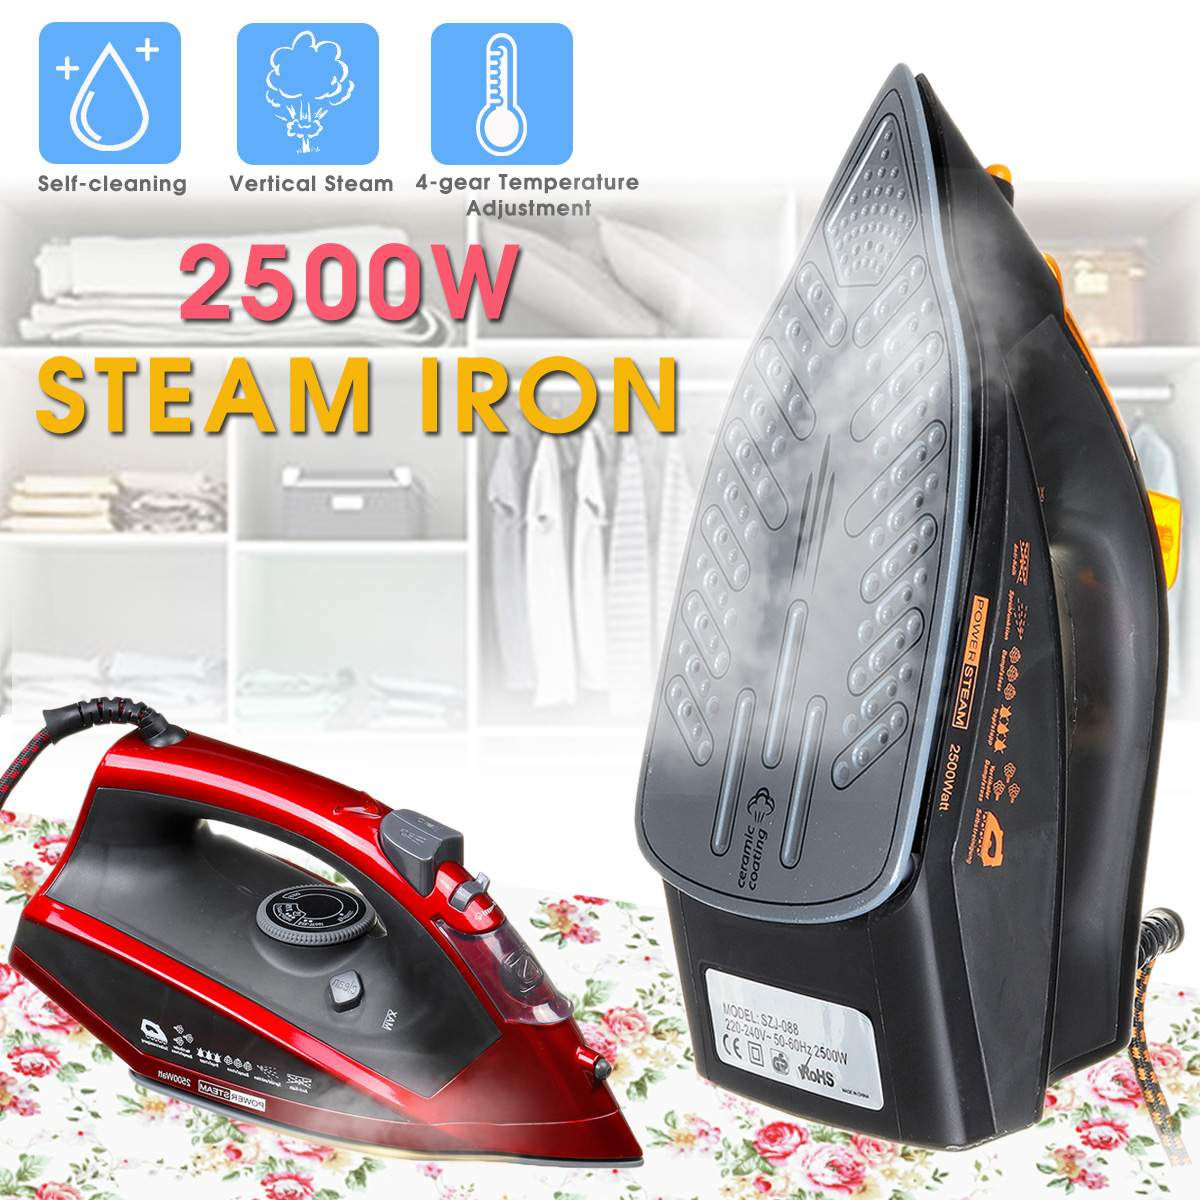 2500W <font><b>Steam</b></font> <font><b>Iron</b></font> for